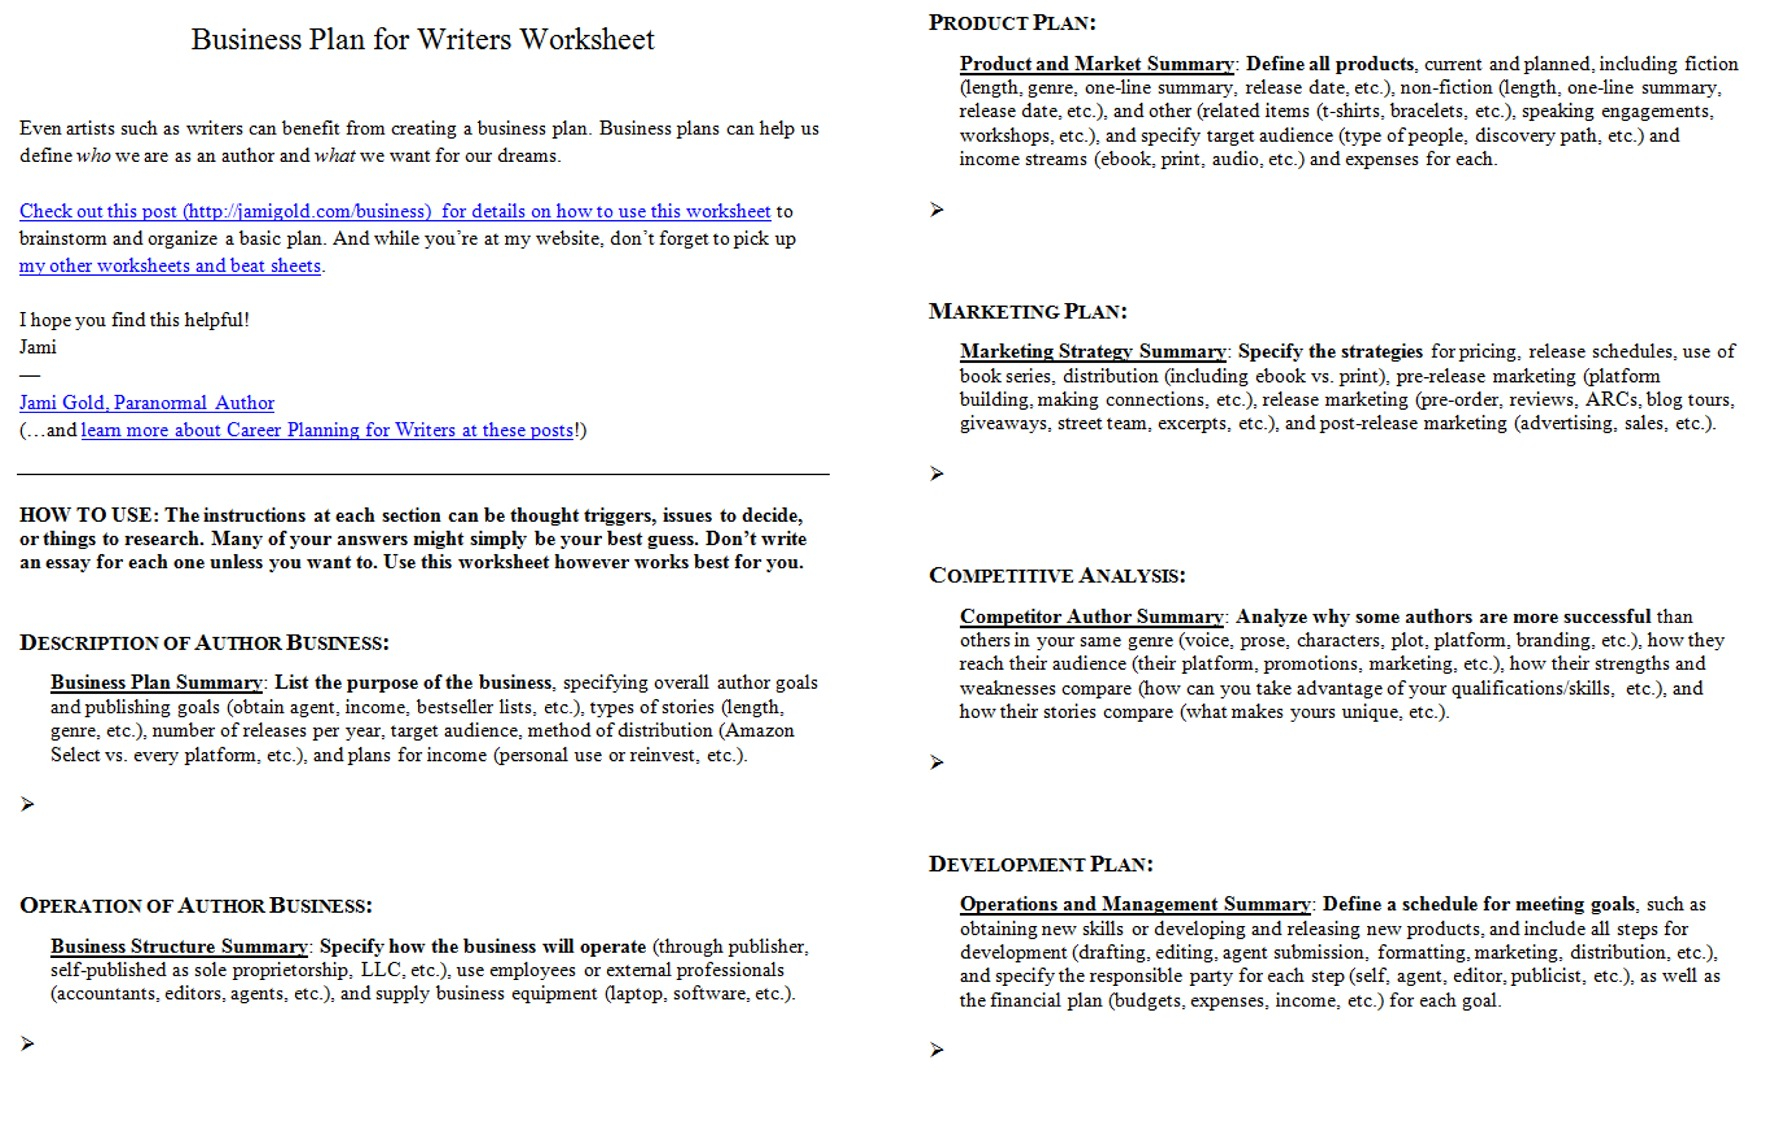 Weirdmailus  Fascinating Worksheets For Writers  Jami Gold Paranormal Author With Inspiring Screen Shot Of Both Pages Of The Business Plan For Writers Worksheet With Beauteous Free Worksheet Generator Also Scatterplot Worksheet In Addition Parts Of The Plant And Their Functions Worksheet And Kidzone Math Worksheets As Well As Single Replacement Worksheet Additionally Story Sequencing Worksheets For Rd Grade From Jamigoldcom With Weirdmailus  Inspiring Worksheets For Writers  Jami Gold Paranormal Author With Beauteous Screen Shot Of Both Pages Of The Business Plan For Writers Worksheet And Fascinating Free Worksheet Generator Also Scatterplot Worksheet In Addition Parts Of The Plant And Their Functions Worksheet From Jamigoldcom